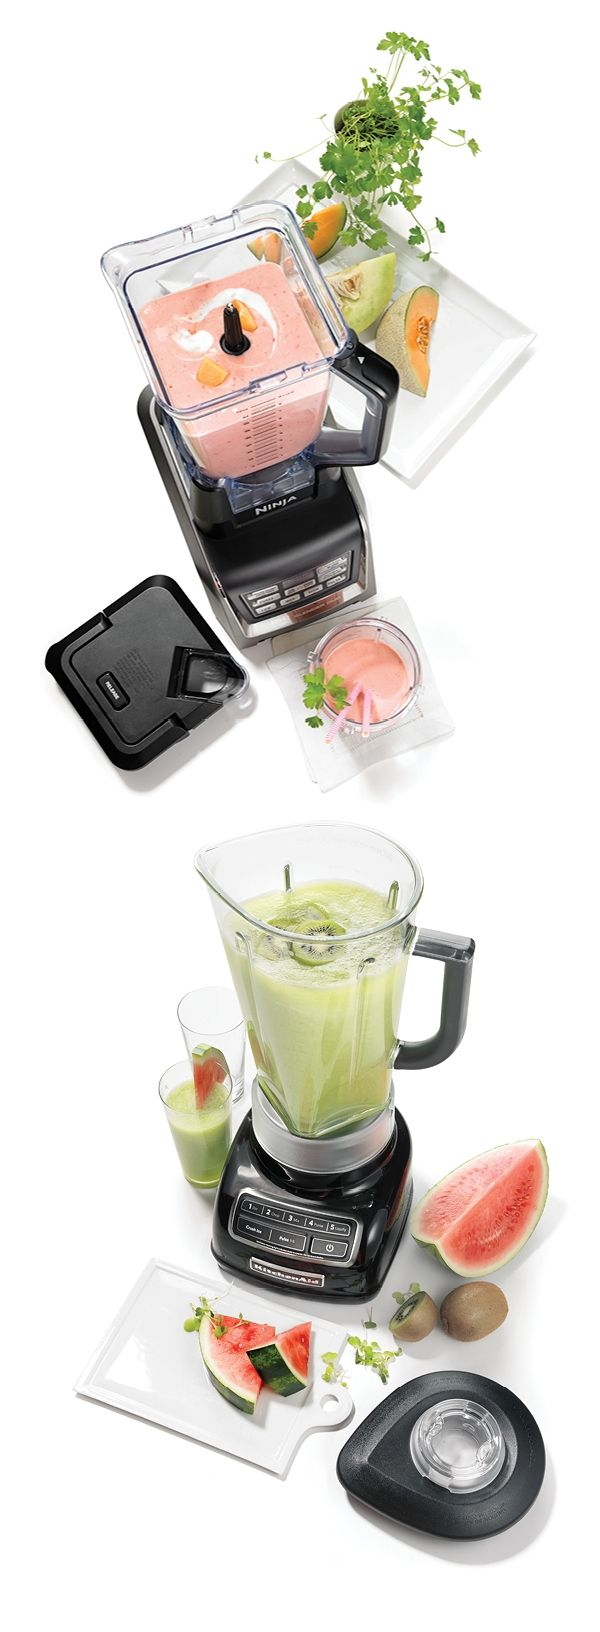 As the temperatures warm up, make sure you have the perfect way to cool down all season long — Ninja & KitchenAid blenders